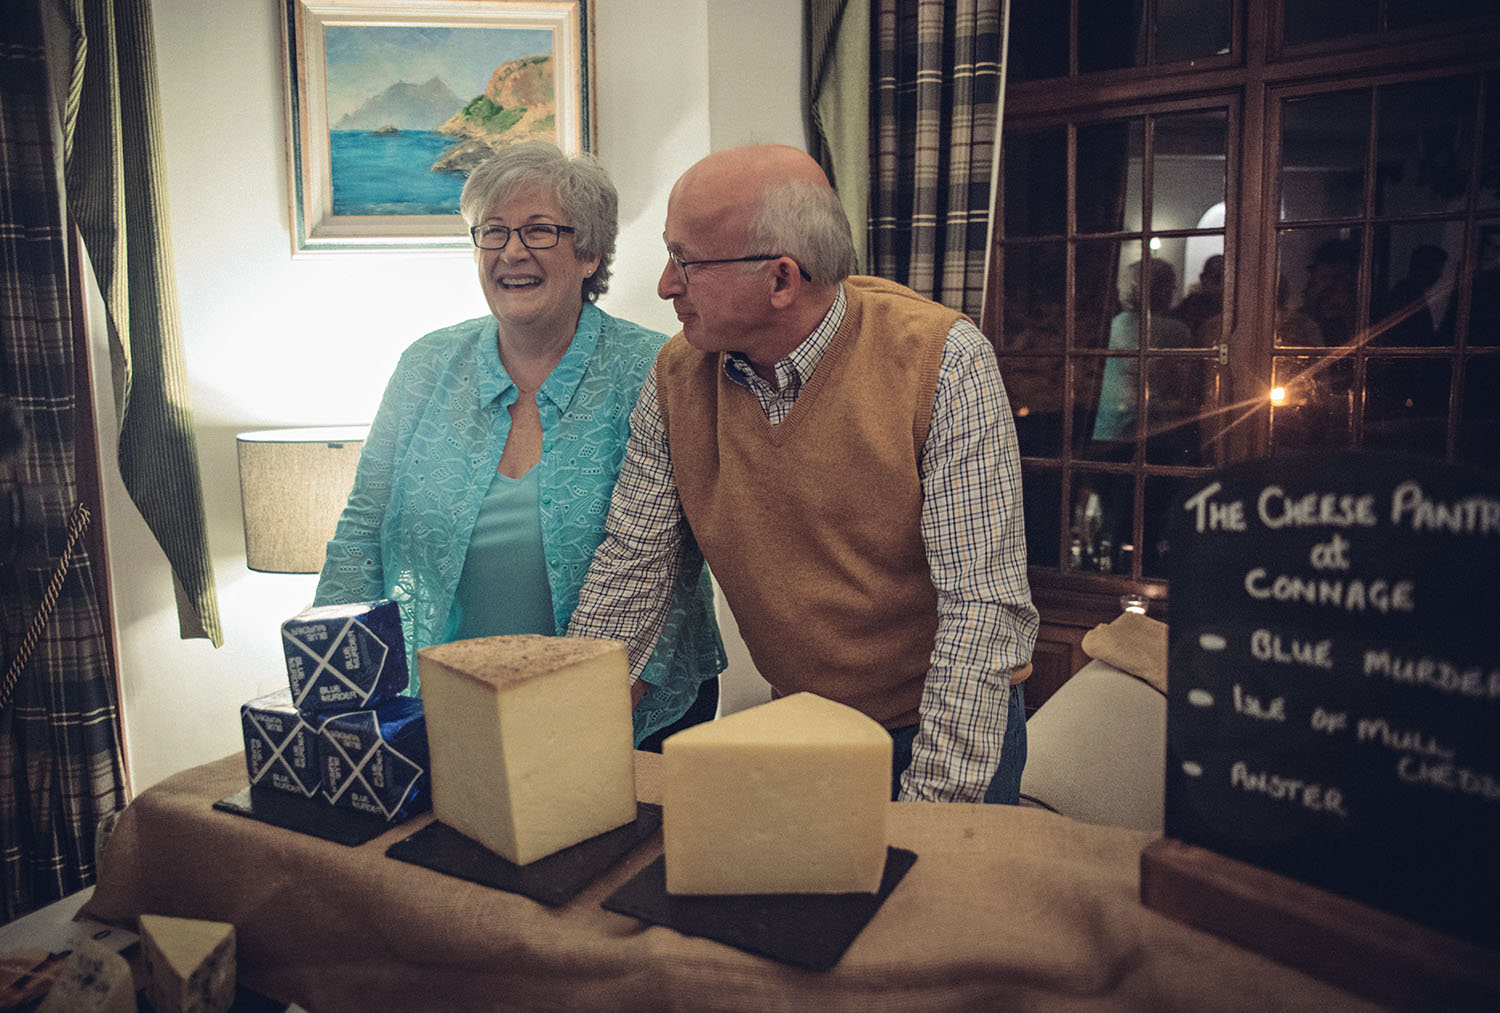 Cheesemakers from The Cheese Pantry at Connage Highland Dairy